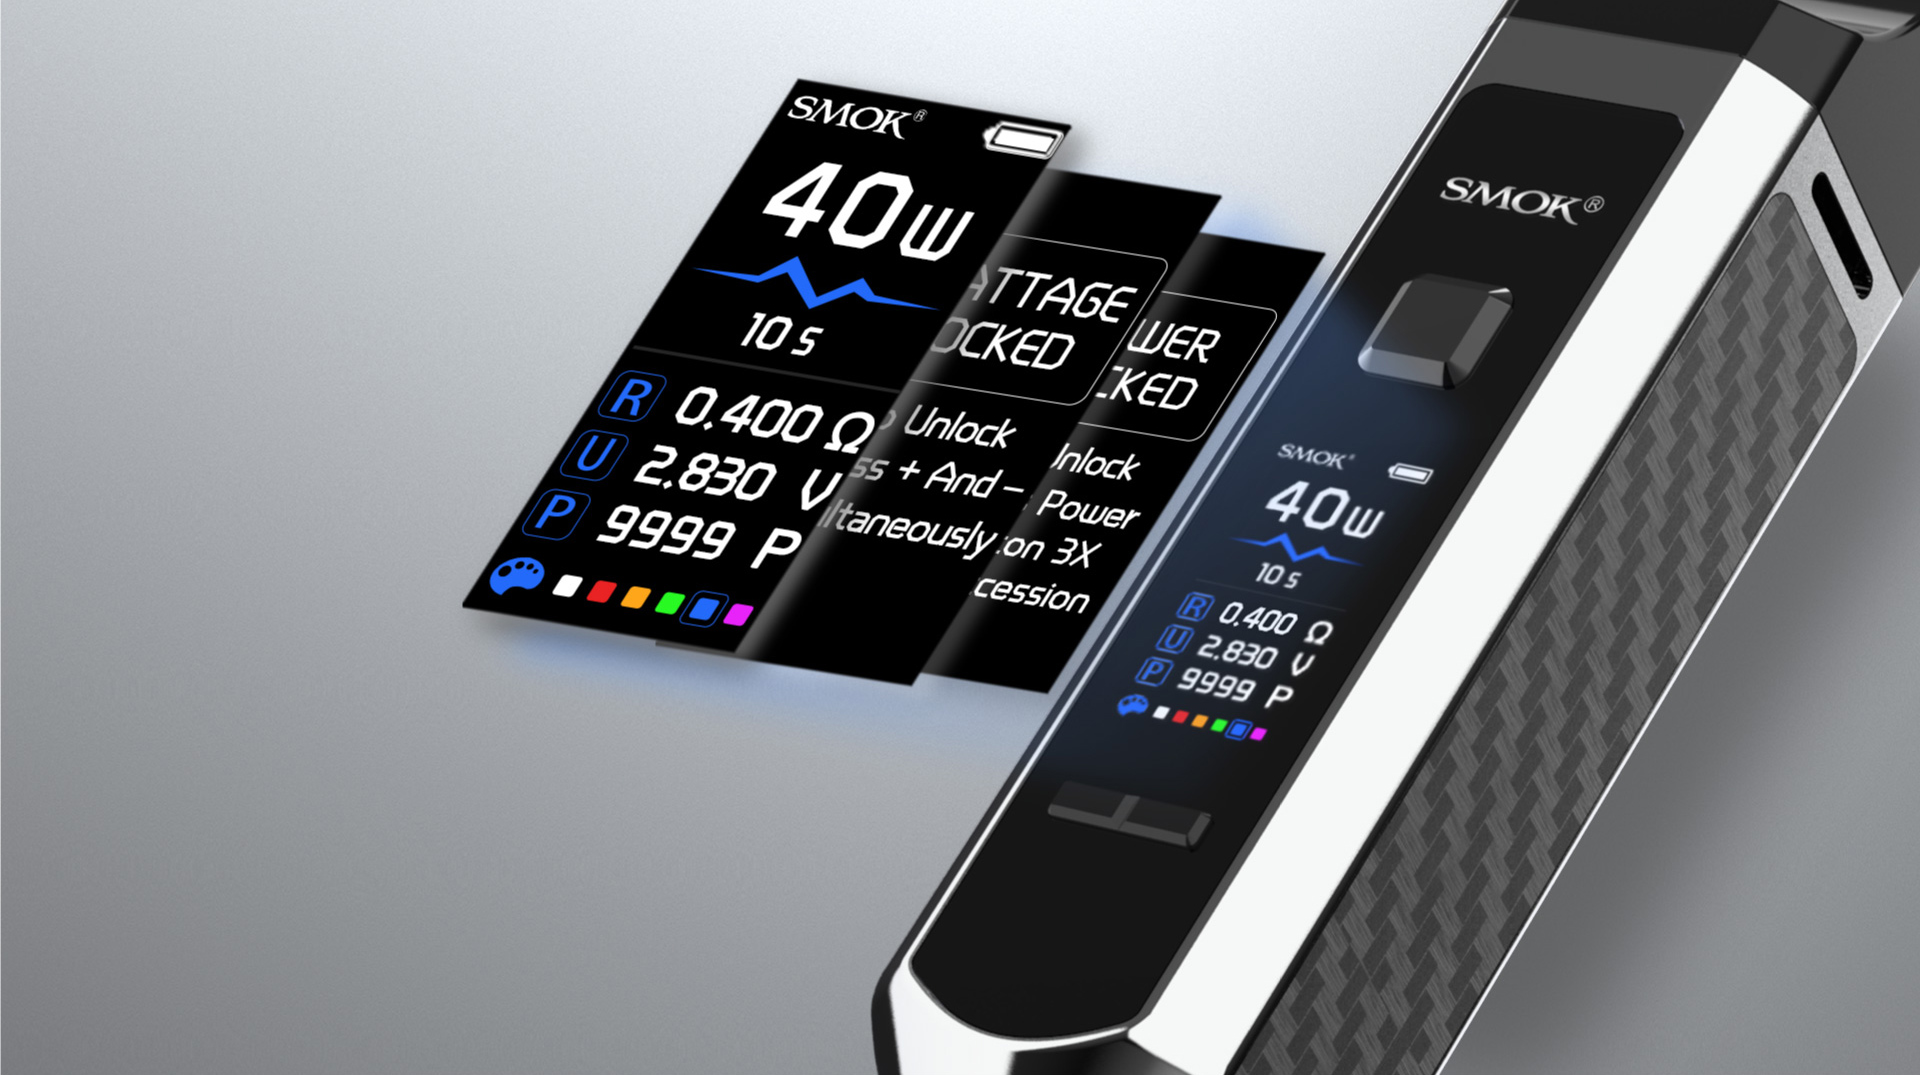 The Screen of SMOK RPM40 Shows You Multi-Information